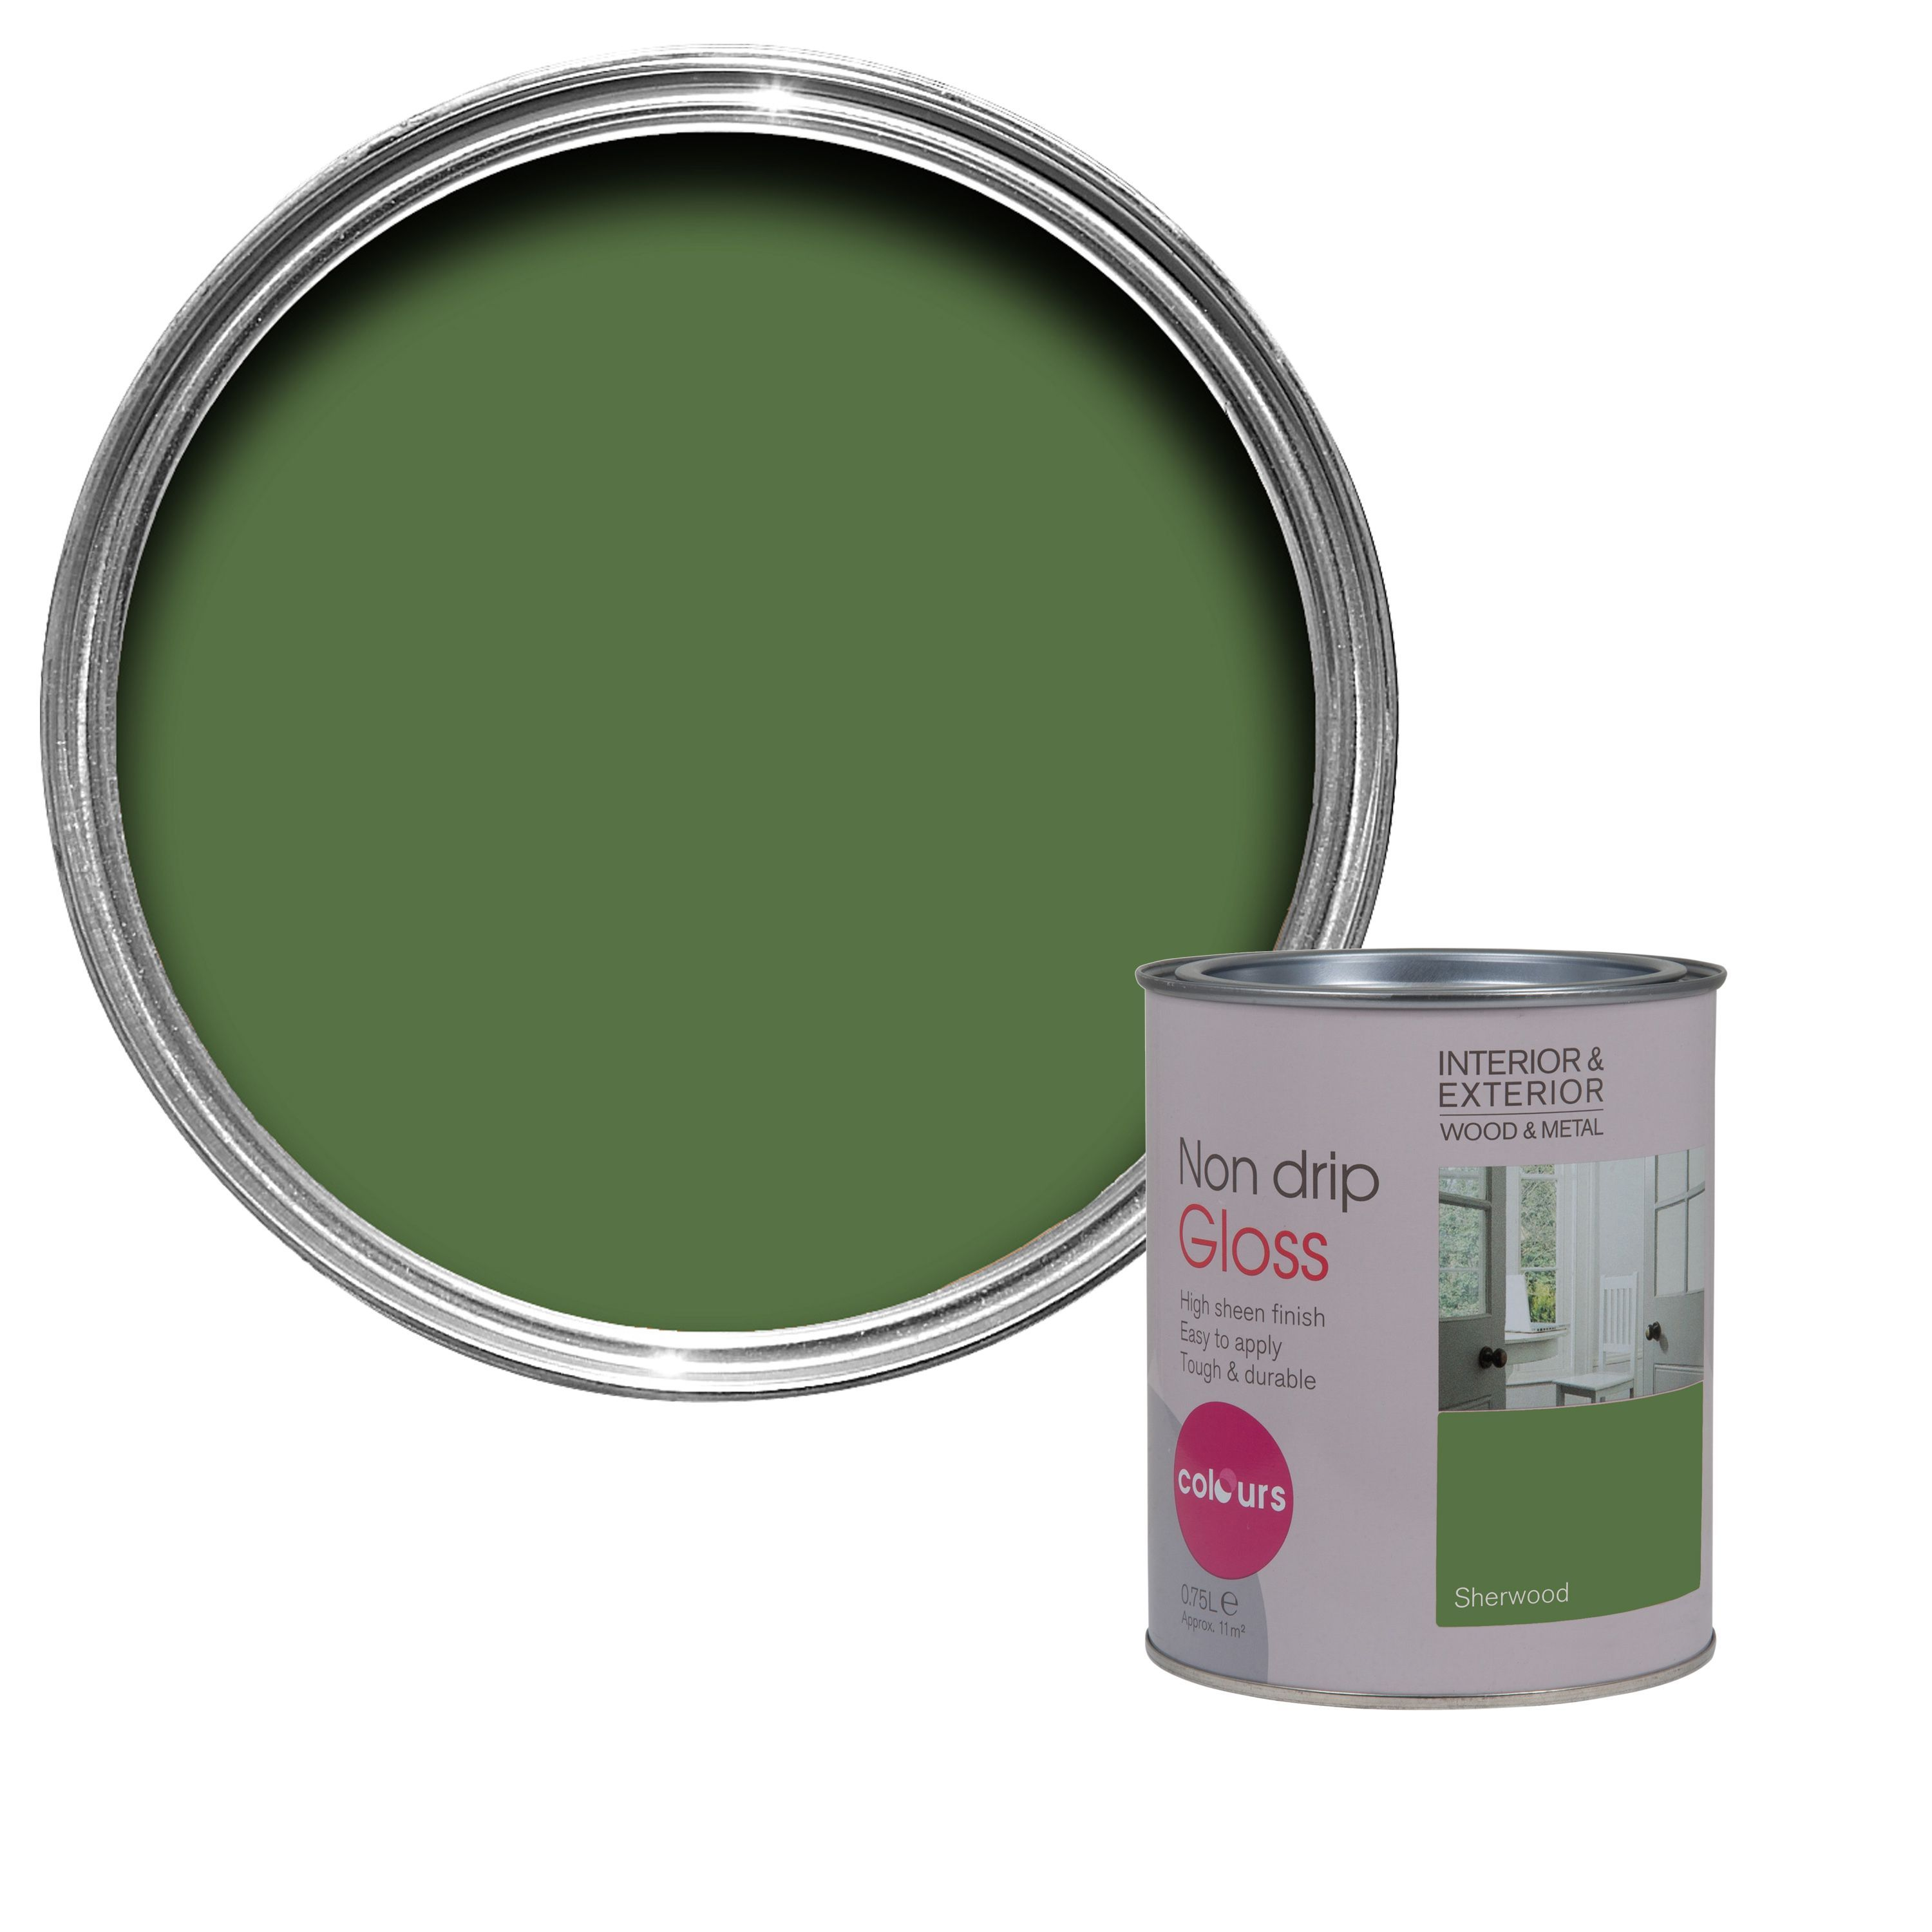 Colours Interior & Exterior Sherwood Gloss Wood & Metal Paint 750ml